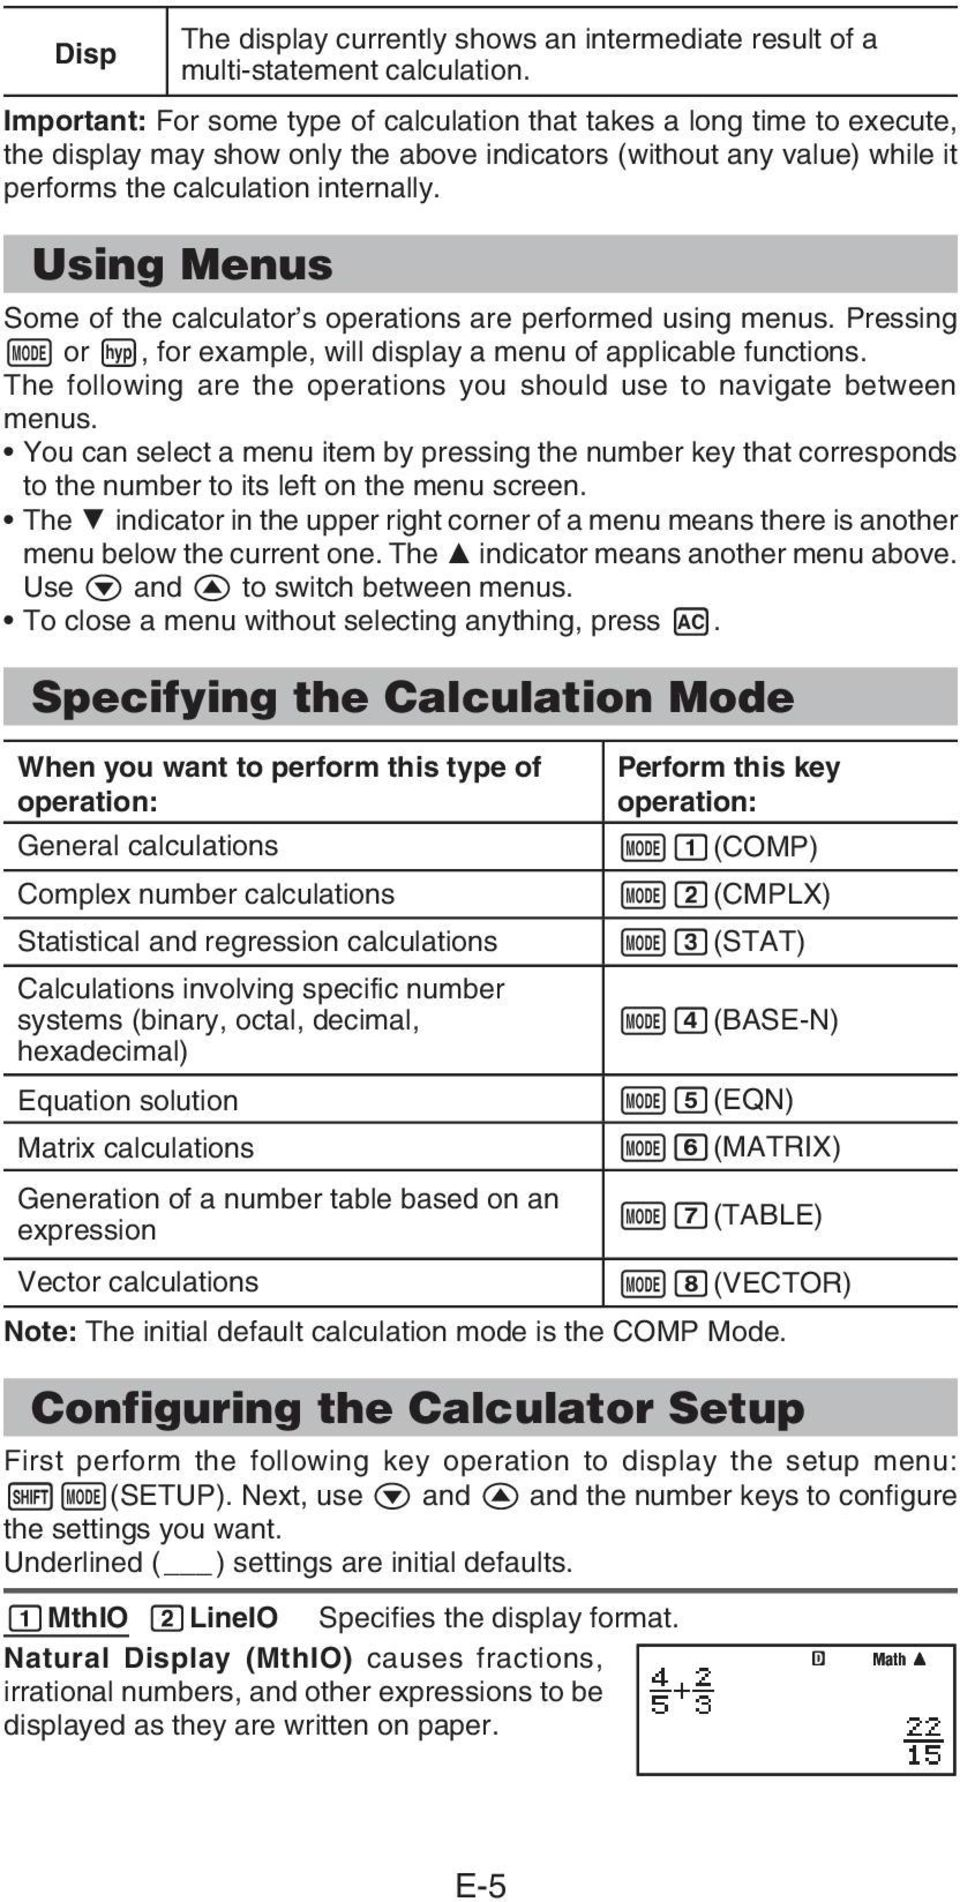 Using Menus Some of the calculator s operations are performed using menus. Pressing or, for example, will display a menu of applicable functions.